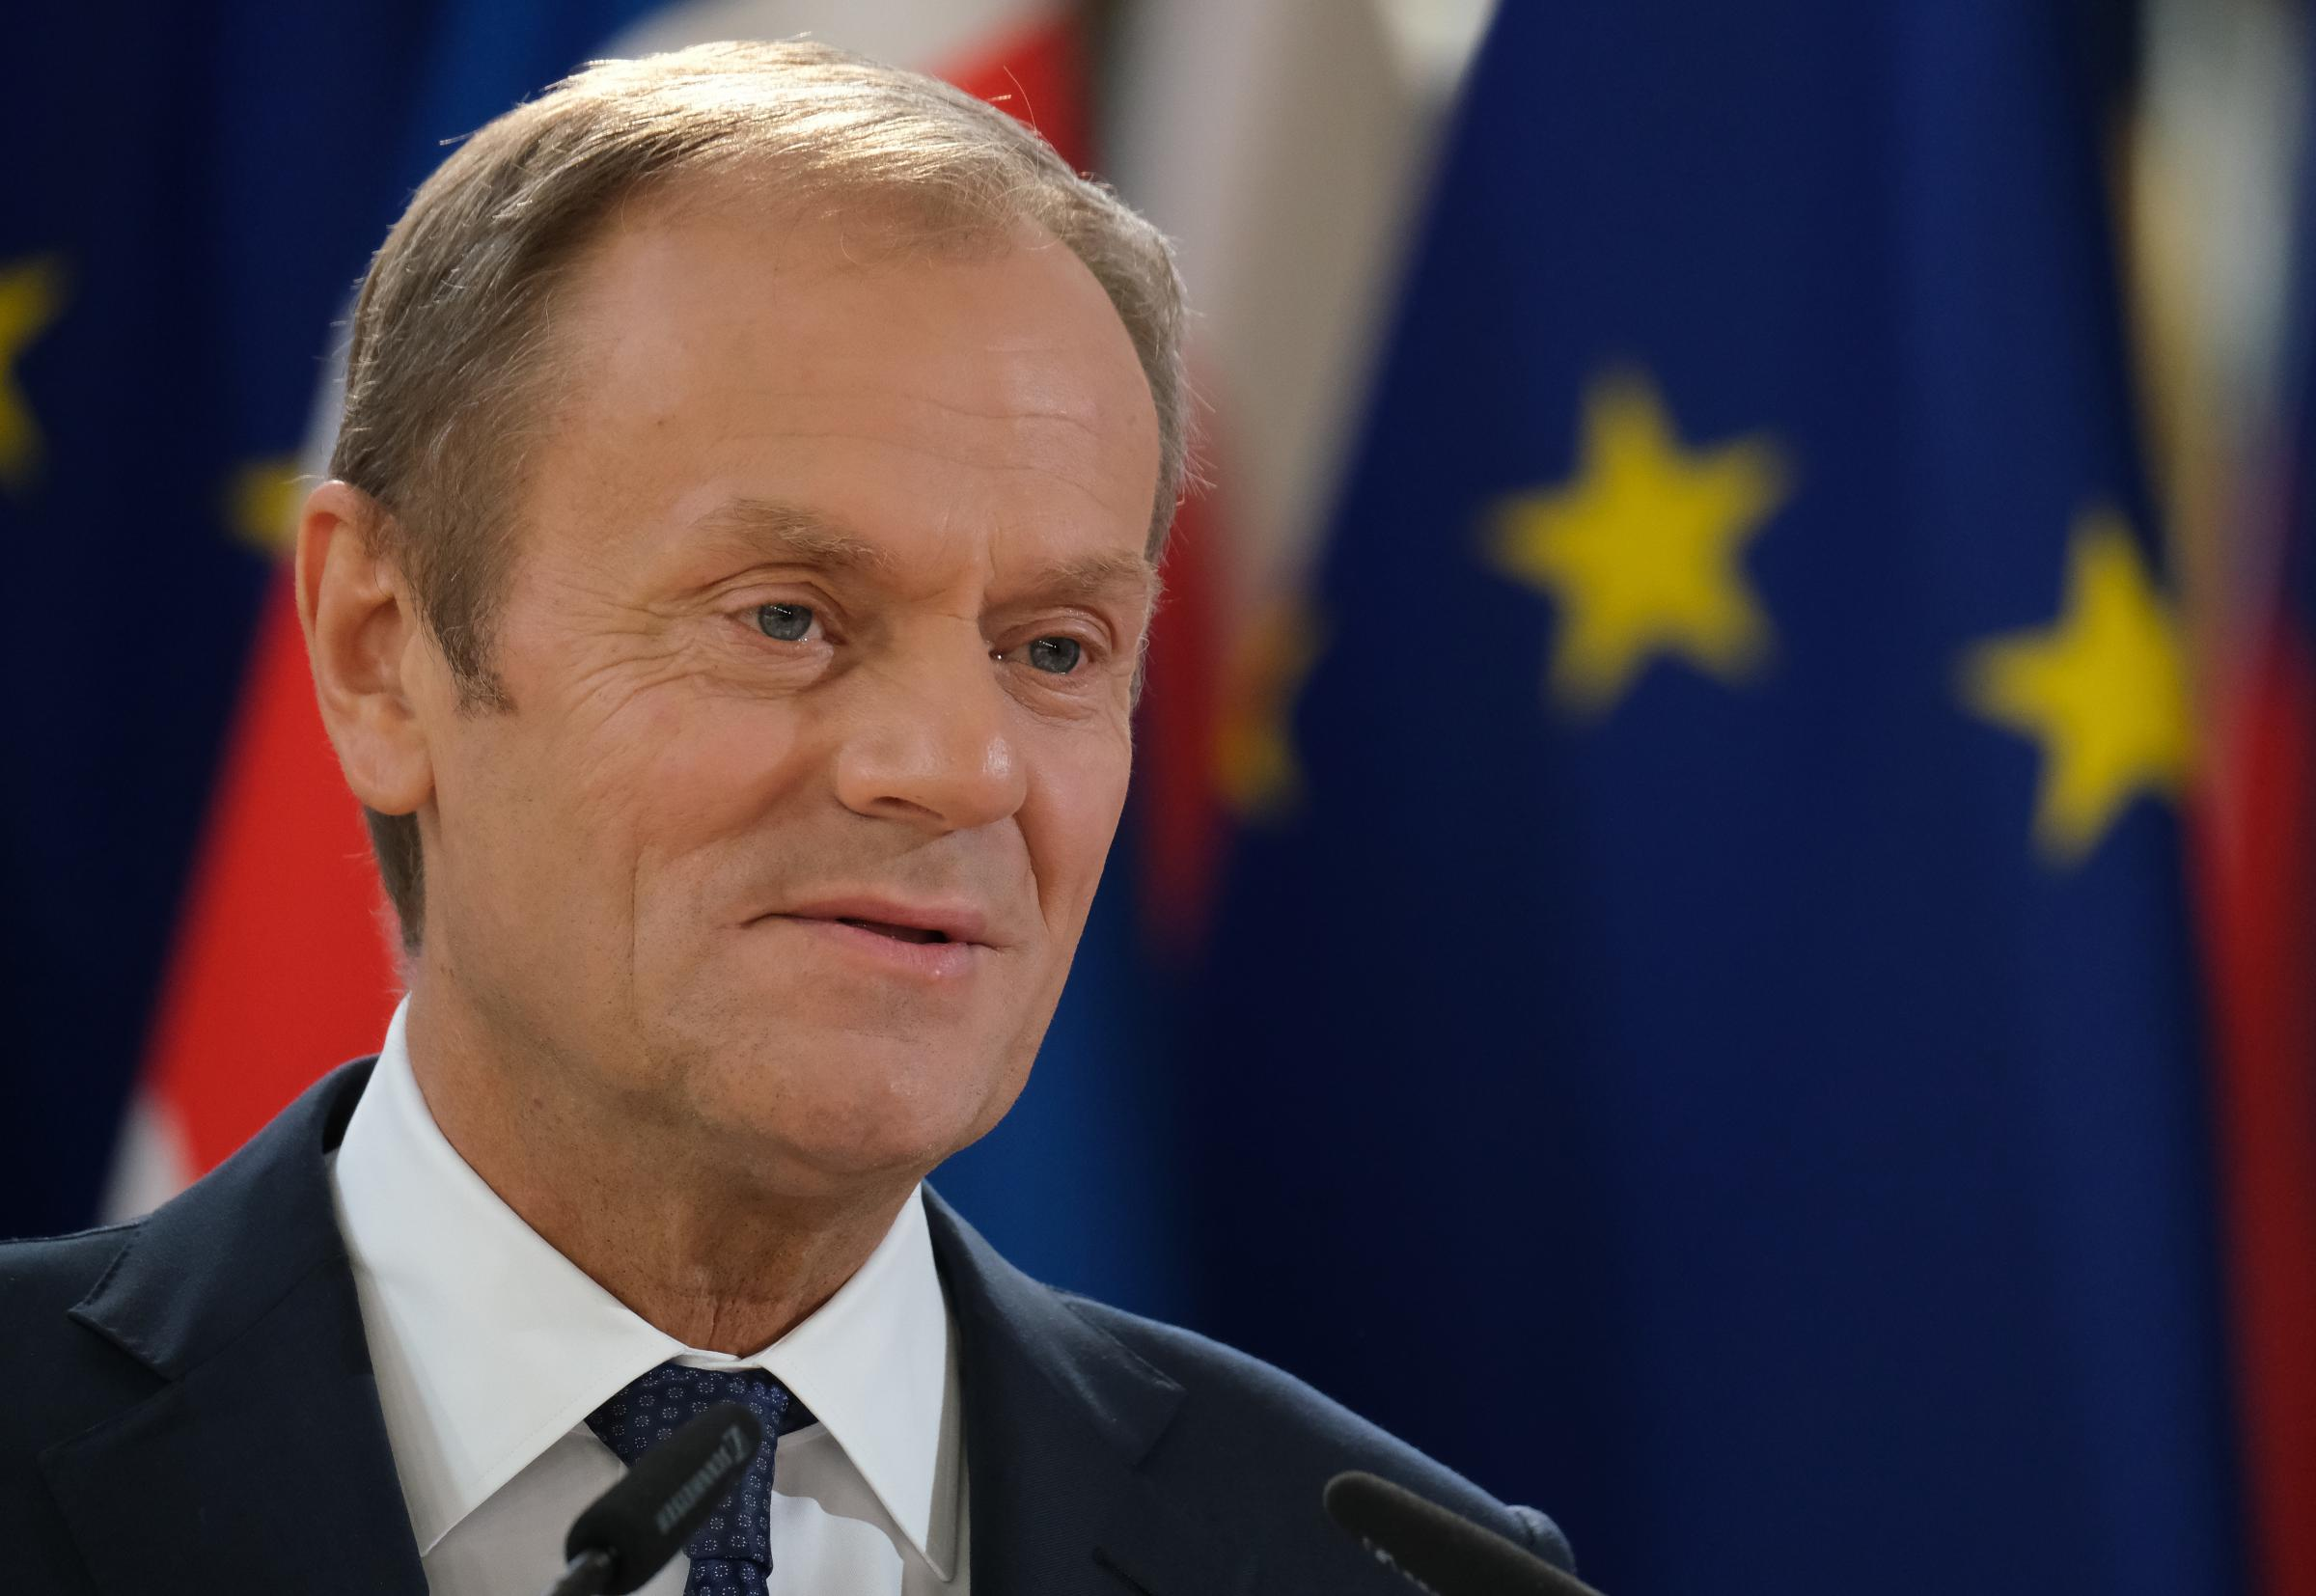 Donald Tusk, President of the European Council, has a had key role in setting the EU's negotiation stance.